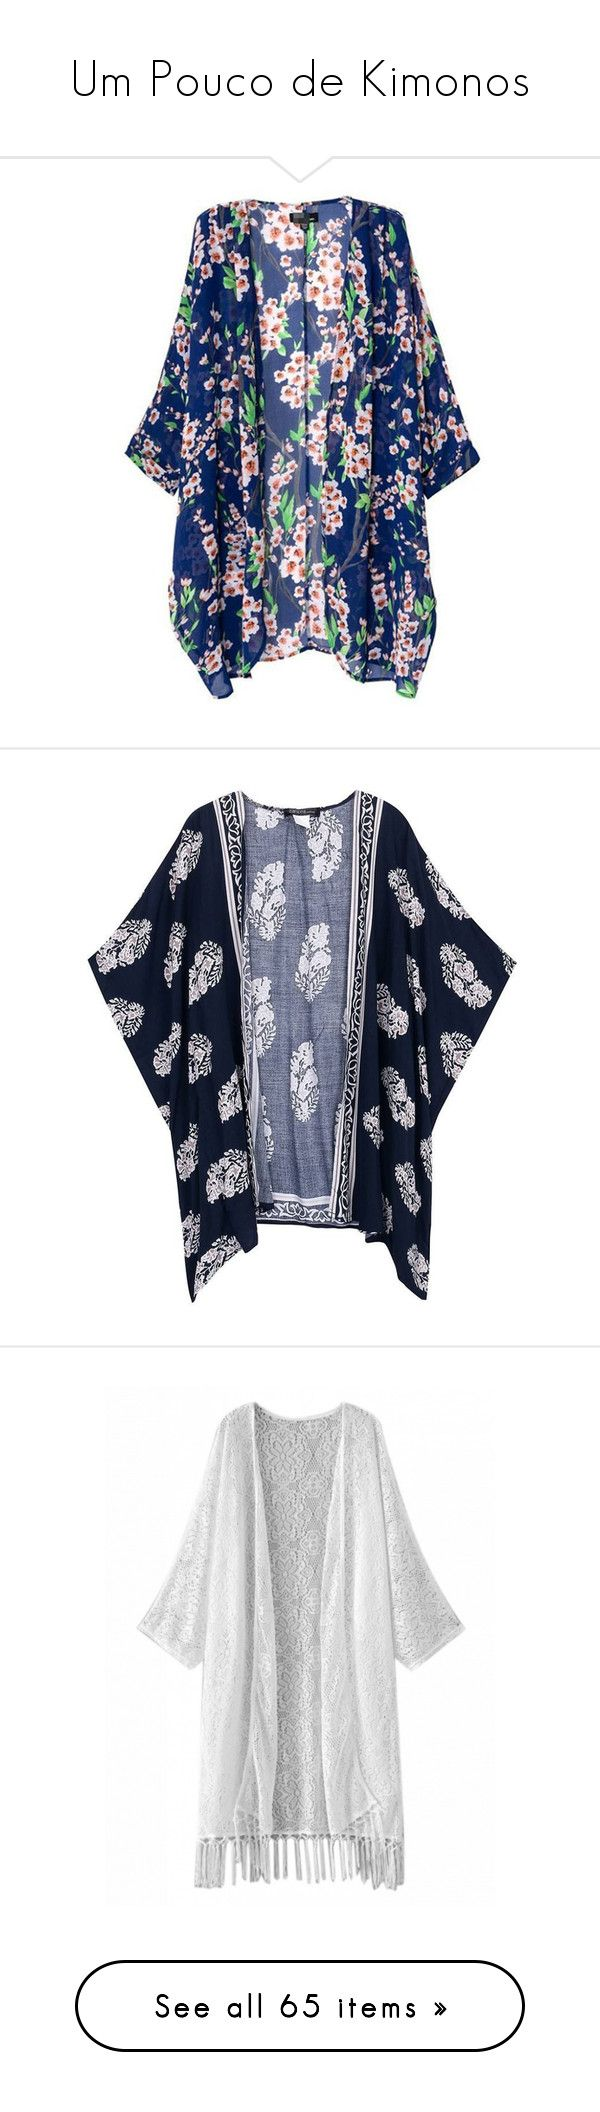 """""""Um Pouco de Kimonos"""" by liasalvatore ❤ liked on Polyvore featuring swimwear, cover-ups, swim suit cover up, kimono swimsuit cover up, bathing suit cover up, swim cover up, kimono swim cover up, tops, cardigans and outerwear"""